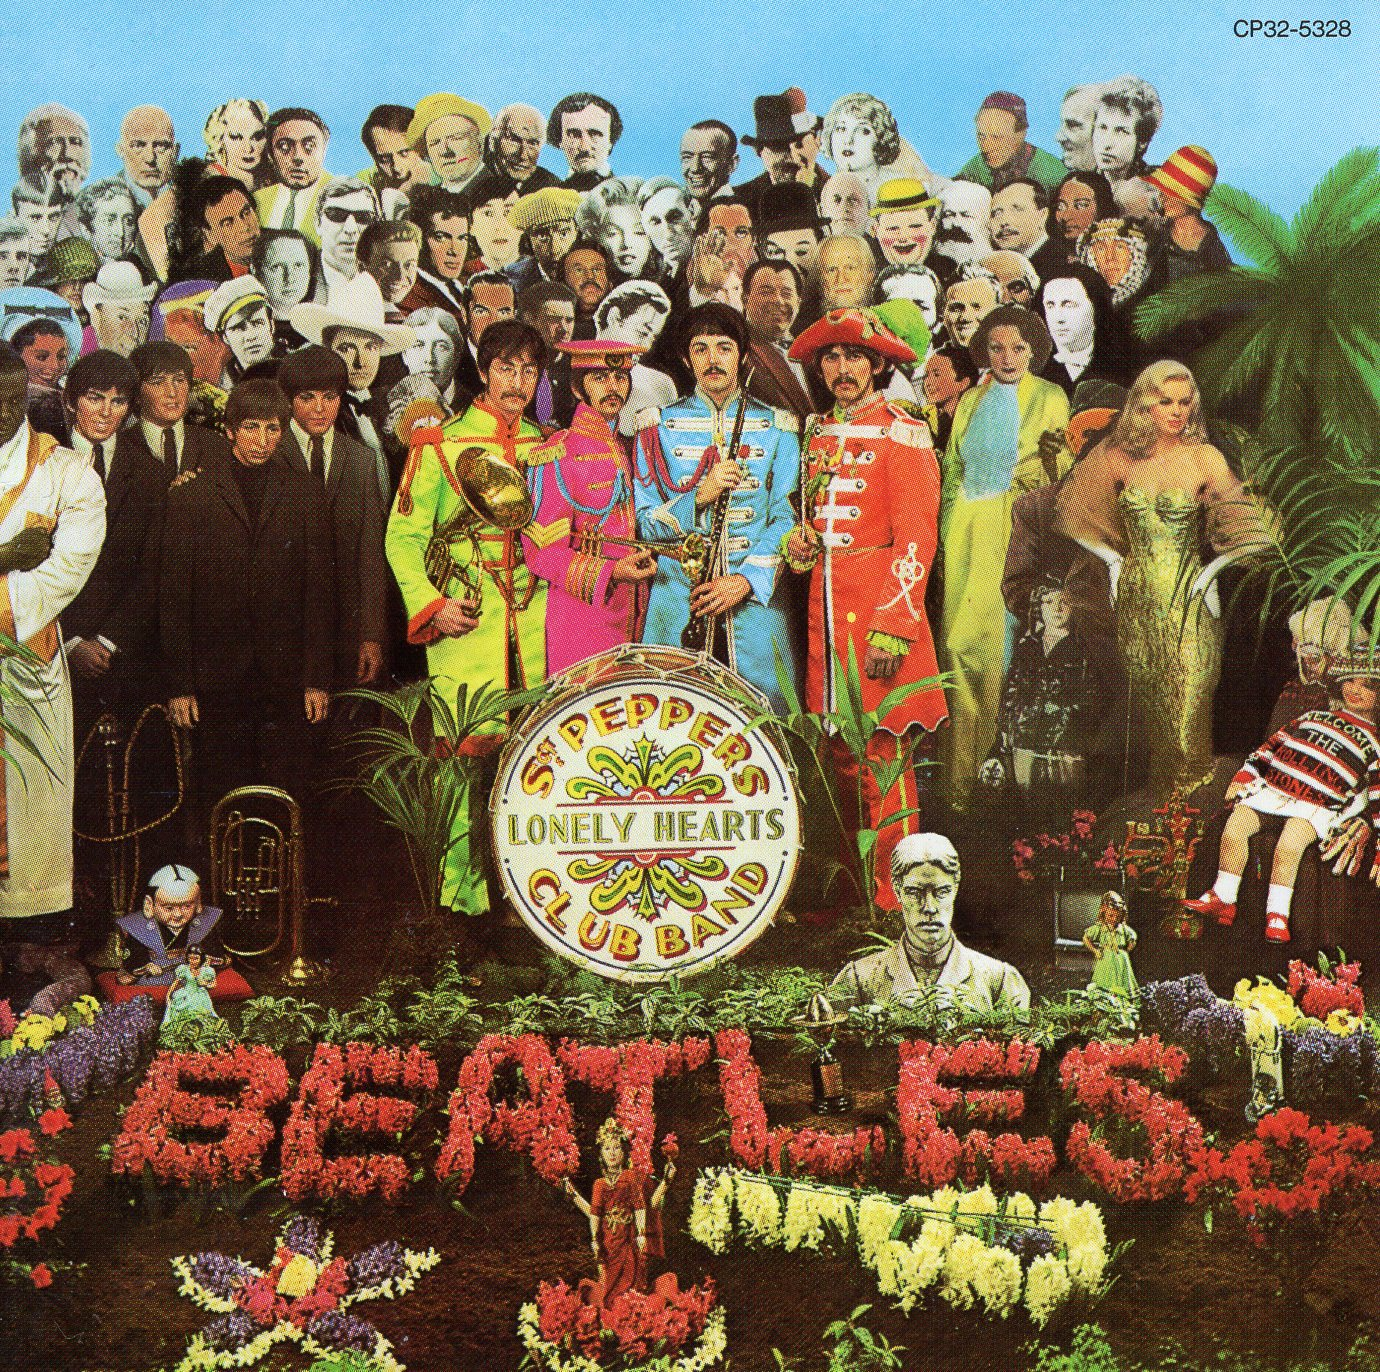 """Sgt. Pepper's Lonely Hearts Club Band"" The Beatles"